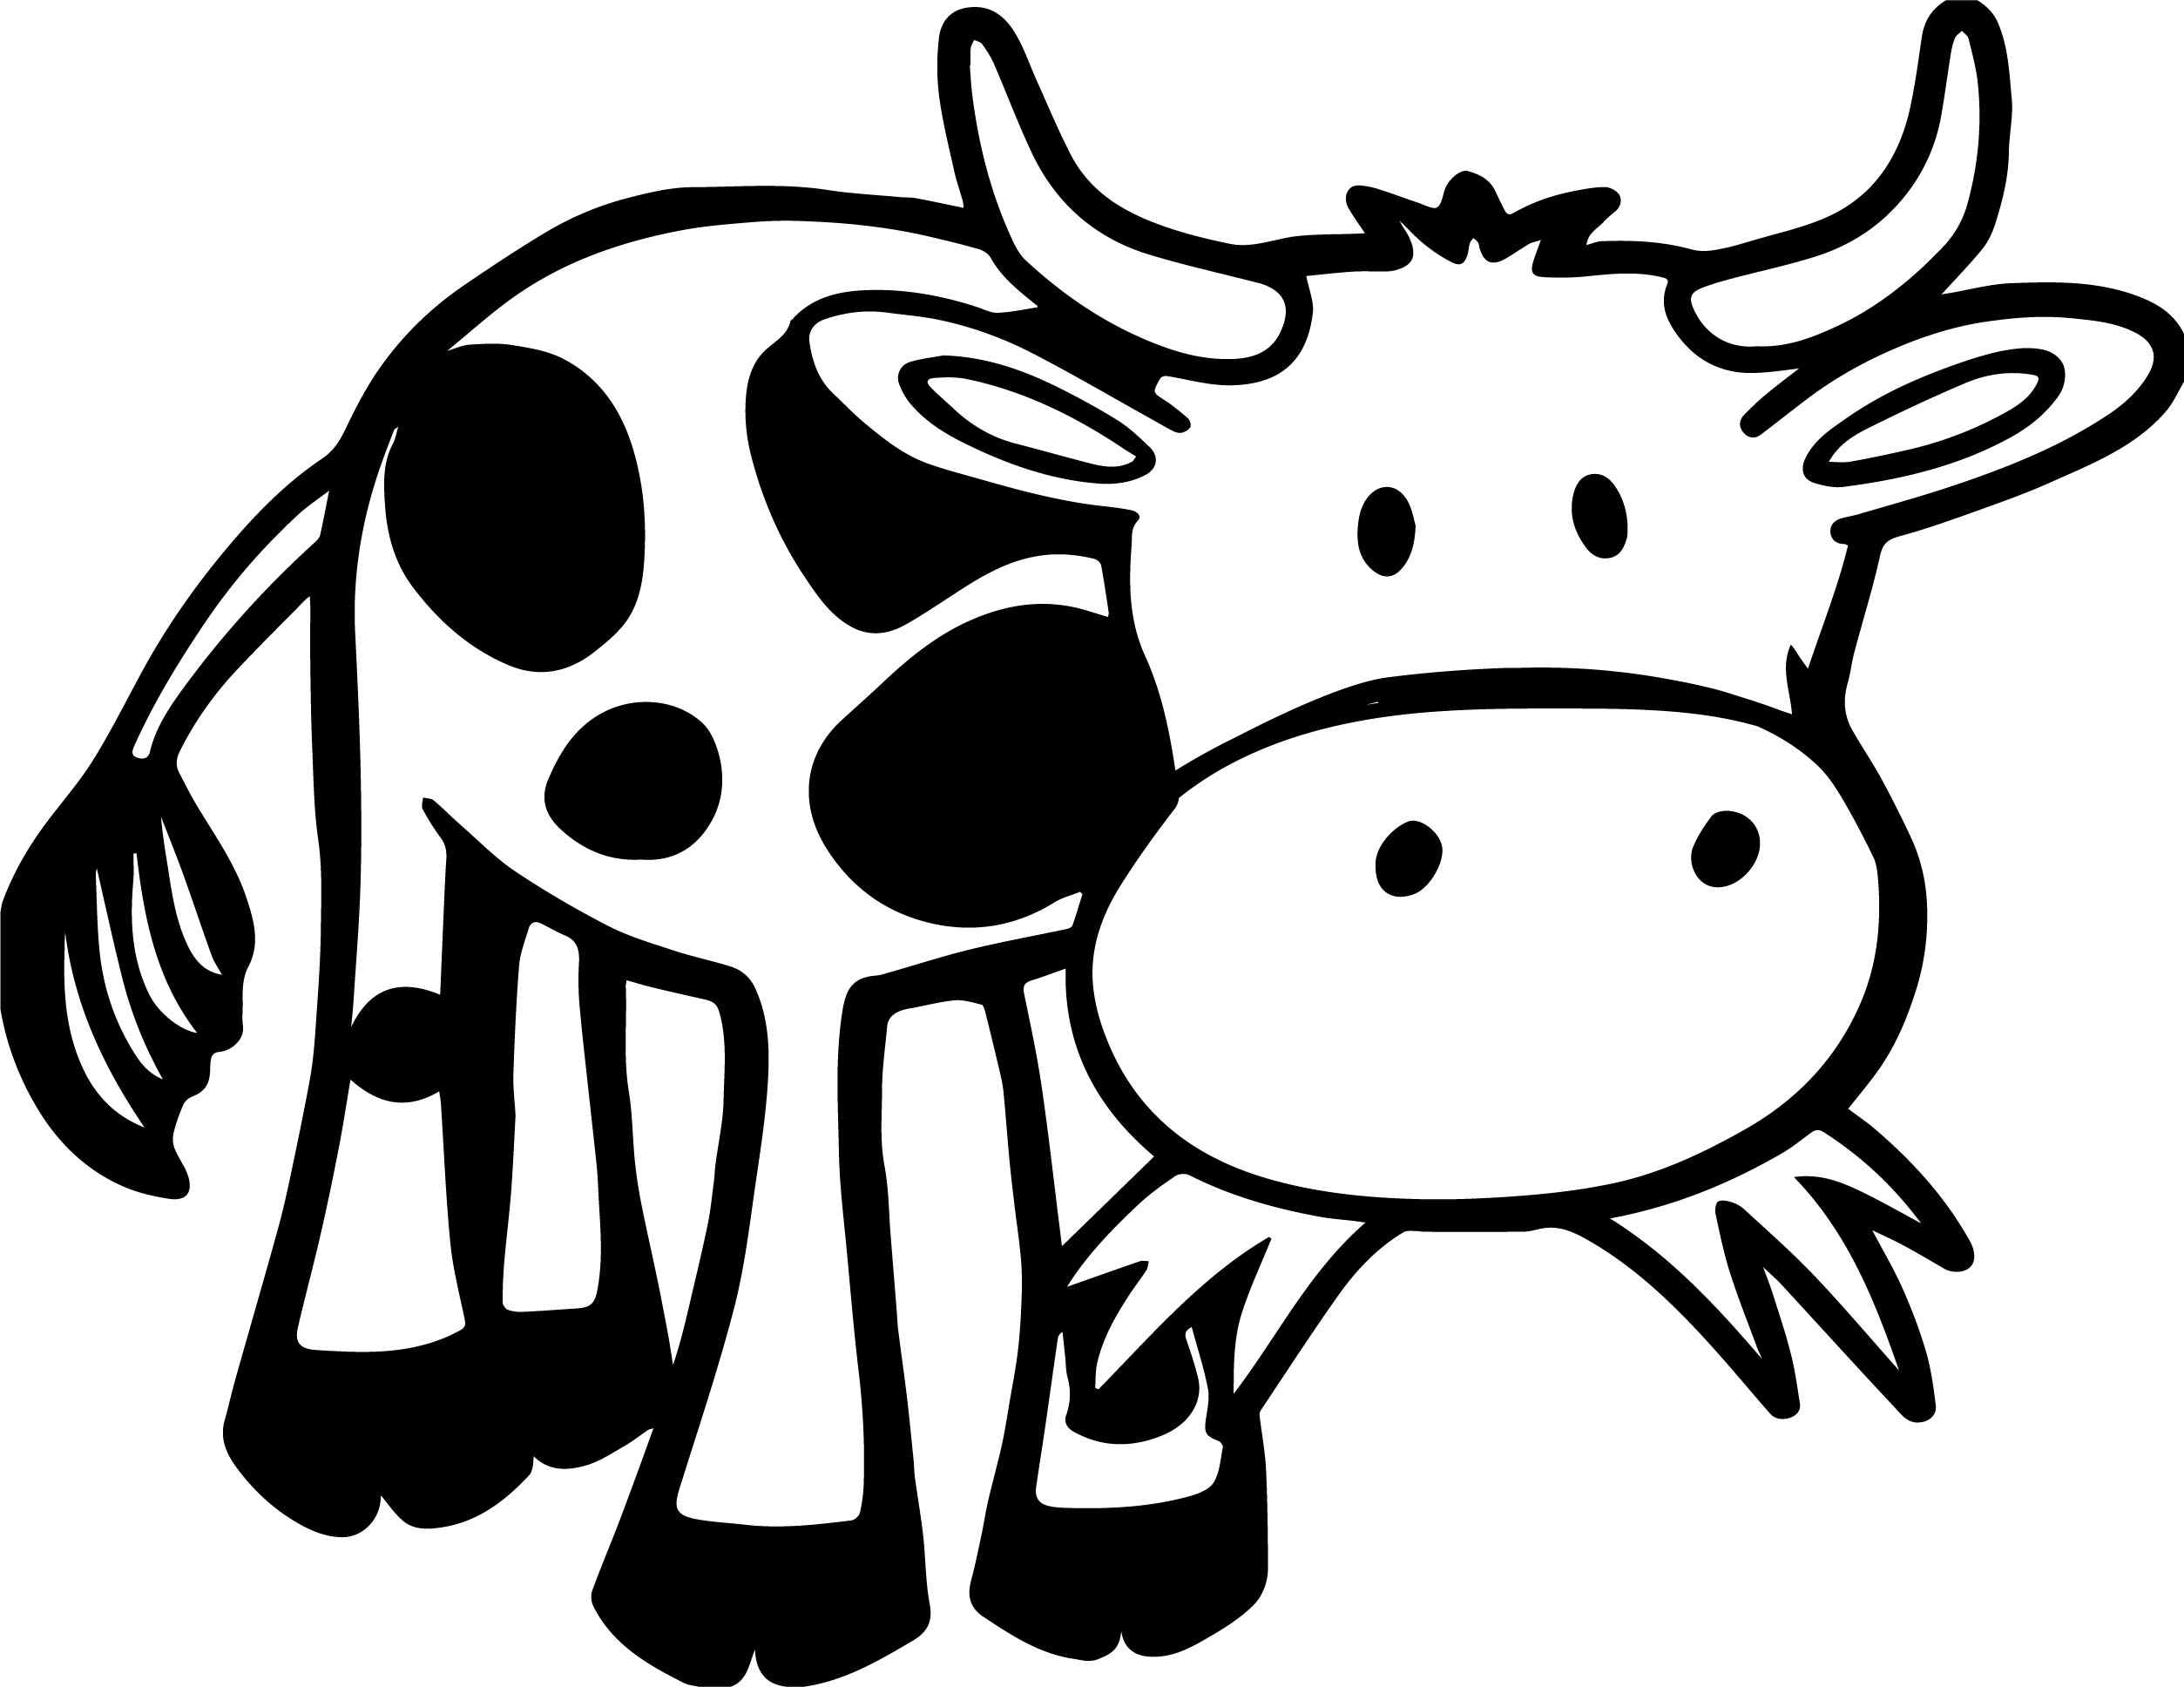 picture of a cow to colour cute cow coloring pages to print cow coloring pages to colour of cow a picture